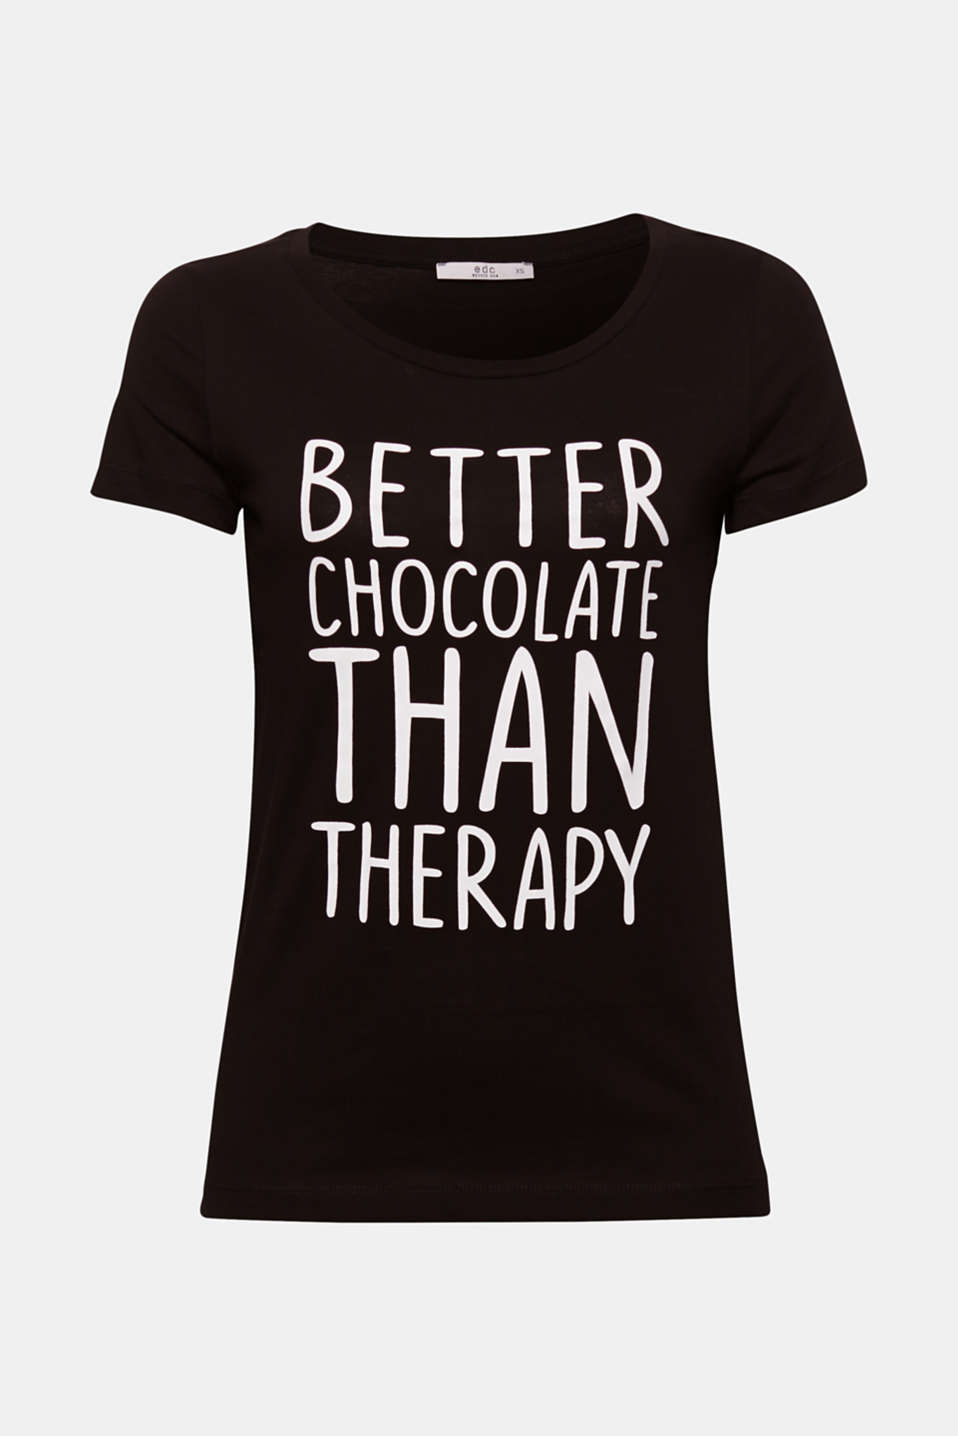 Chocolate helps! And this statement T-shirt with a fun message is guaranteed to cheer you up.